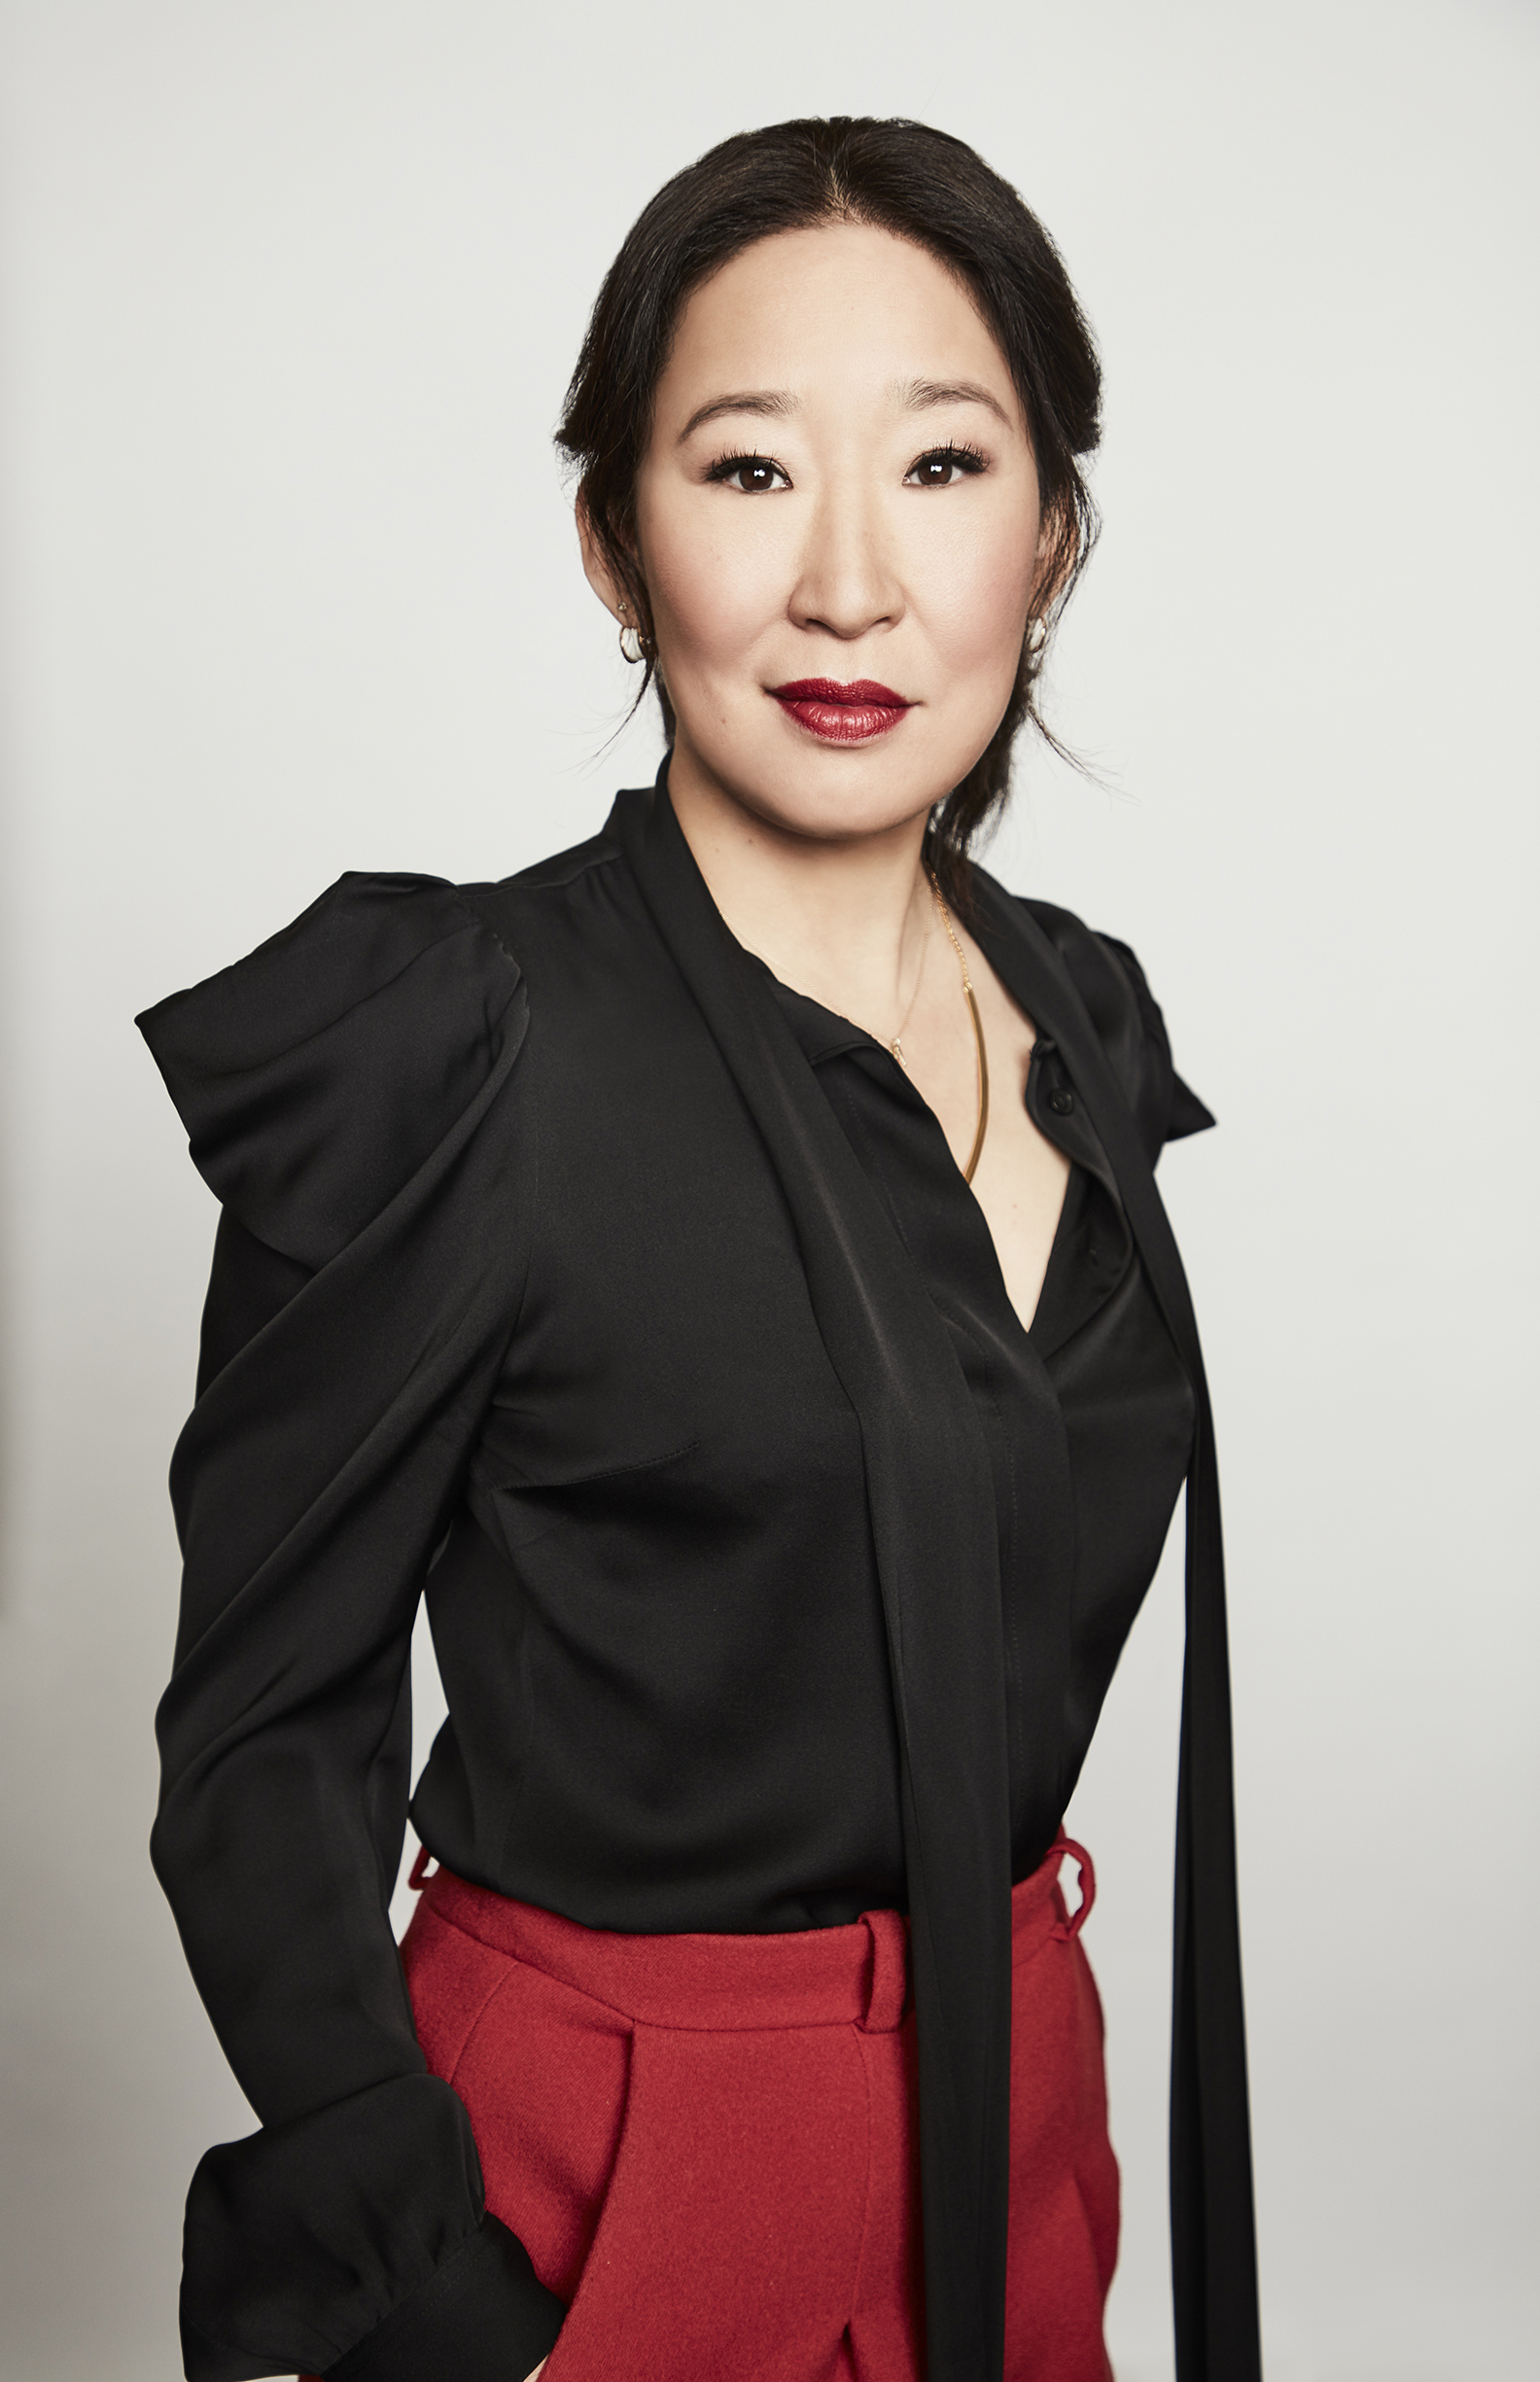 on the case Sandra Oh returns to TV as an MI5 agent chasing a psychopath in the subversive thriller Killing Eve